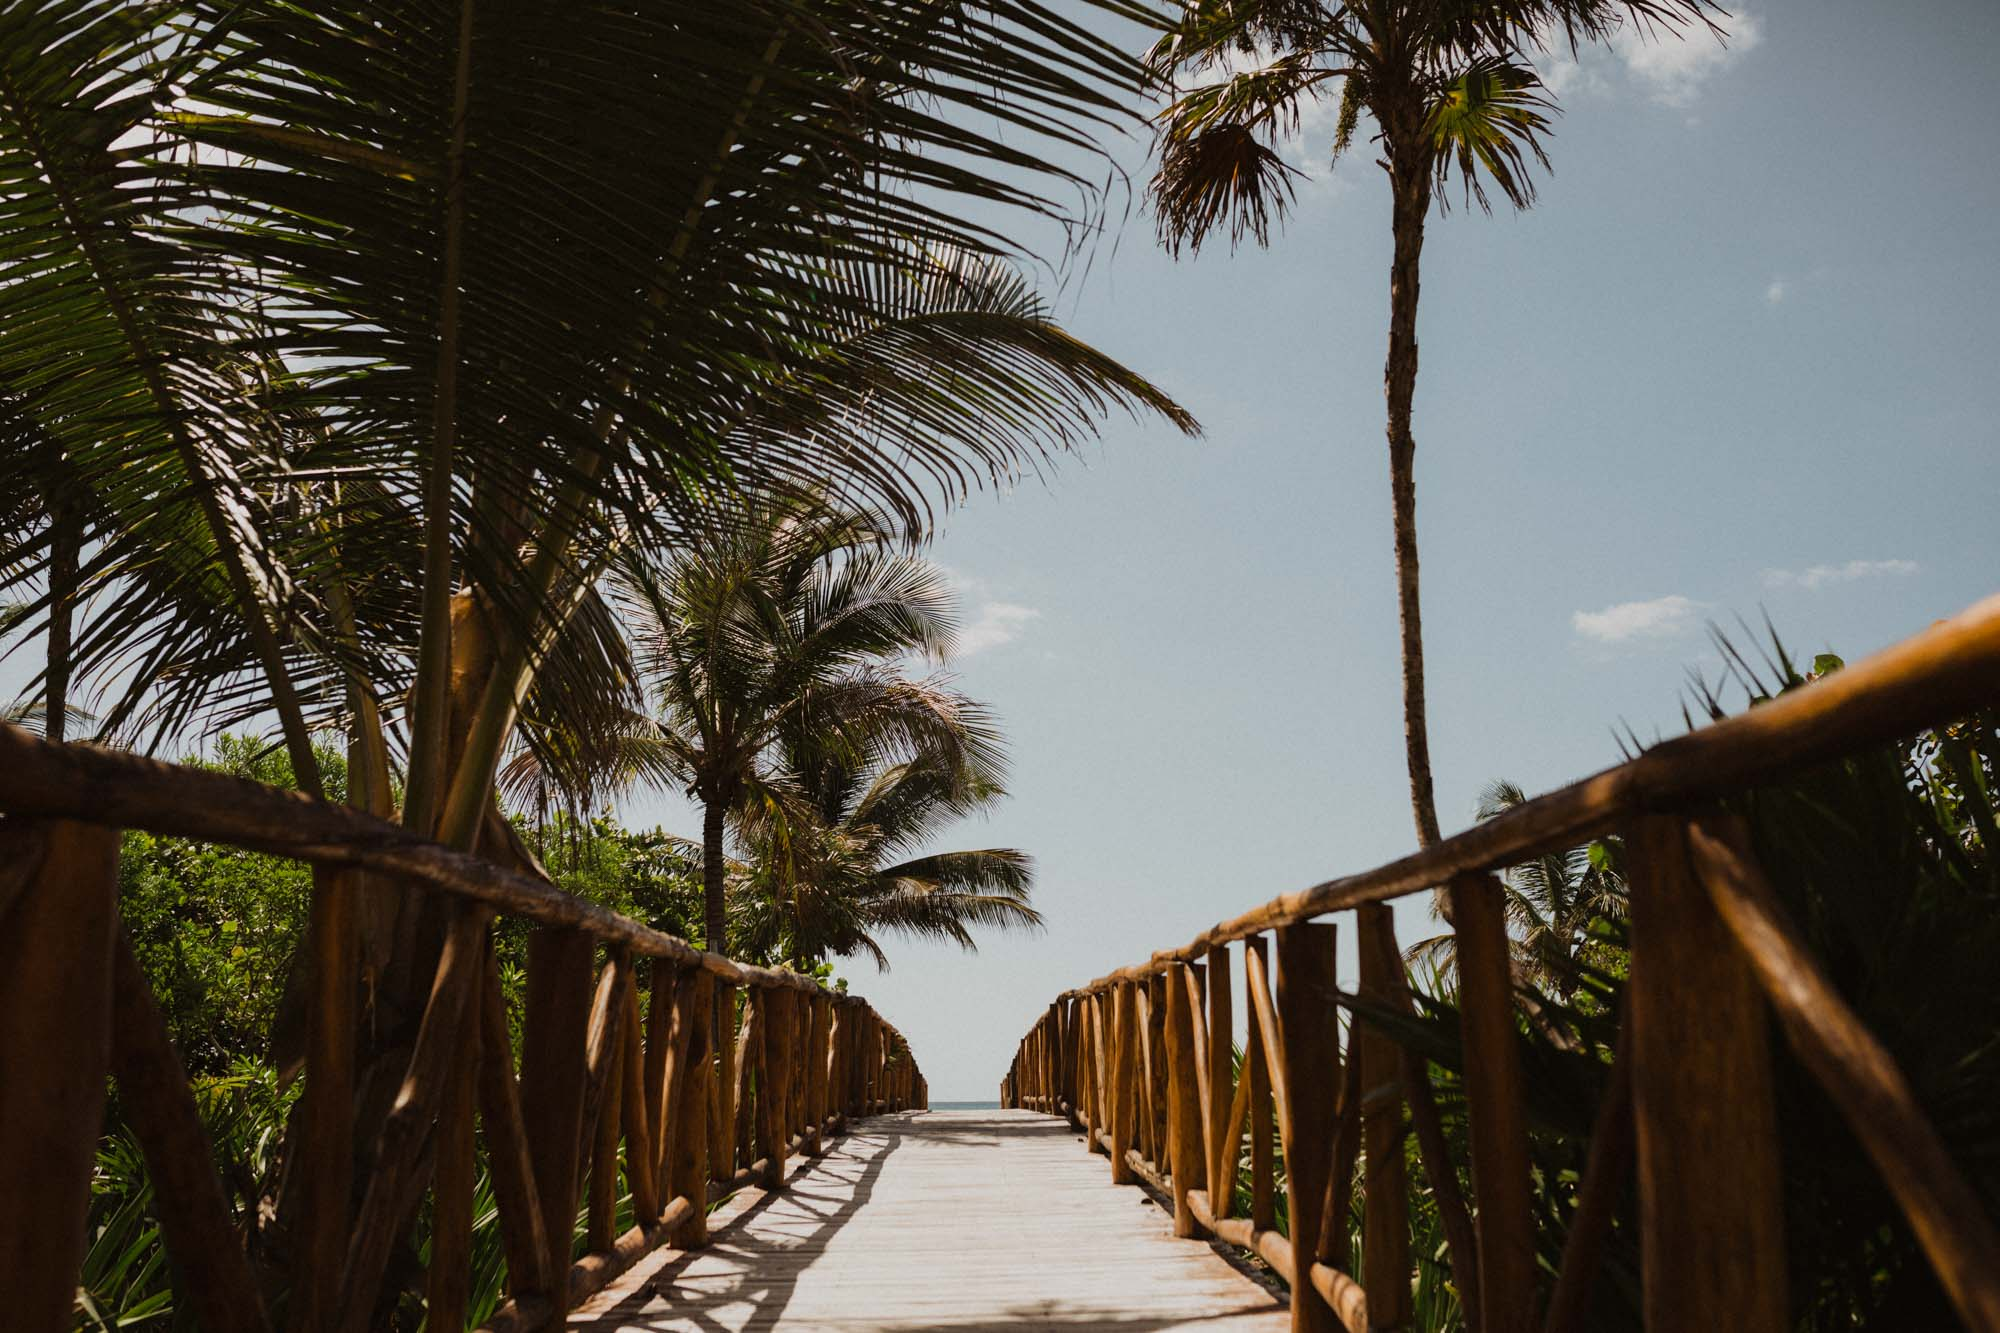 bridge leading to the beach in Mexico